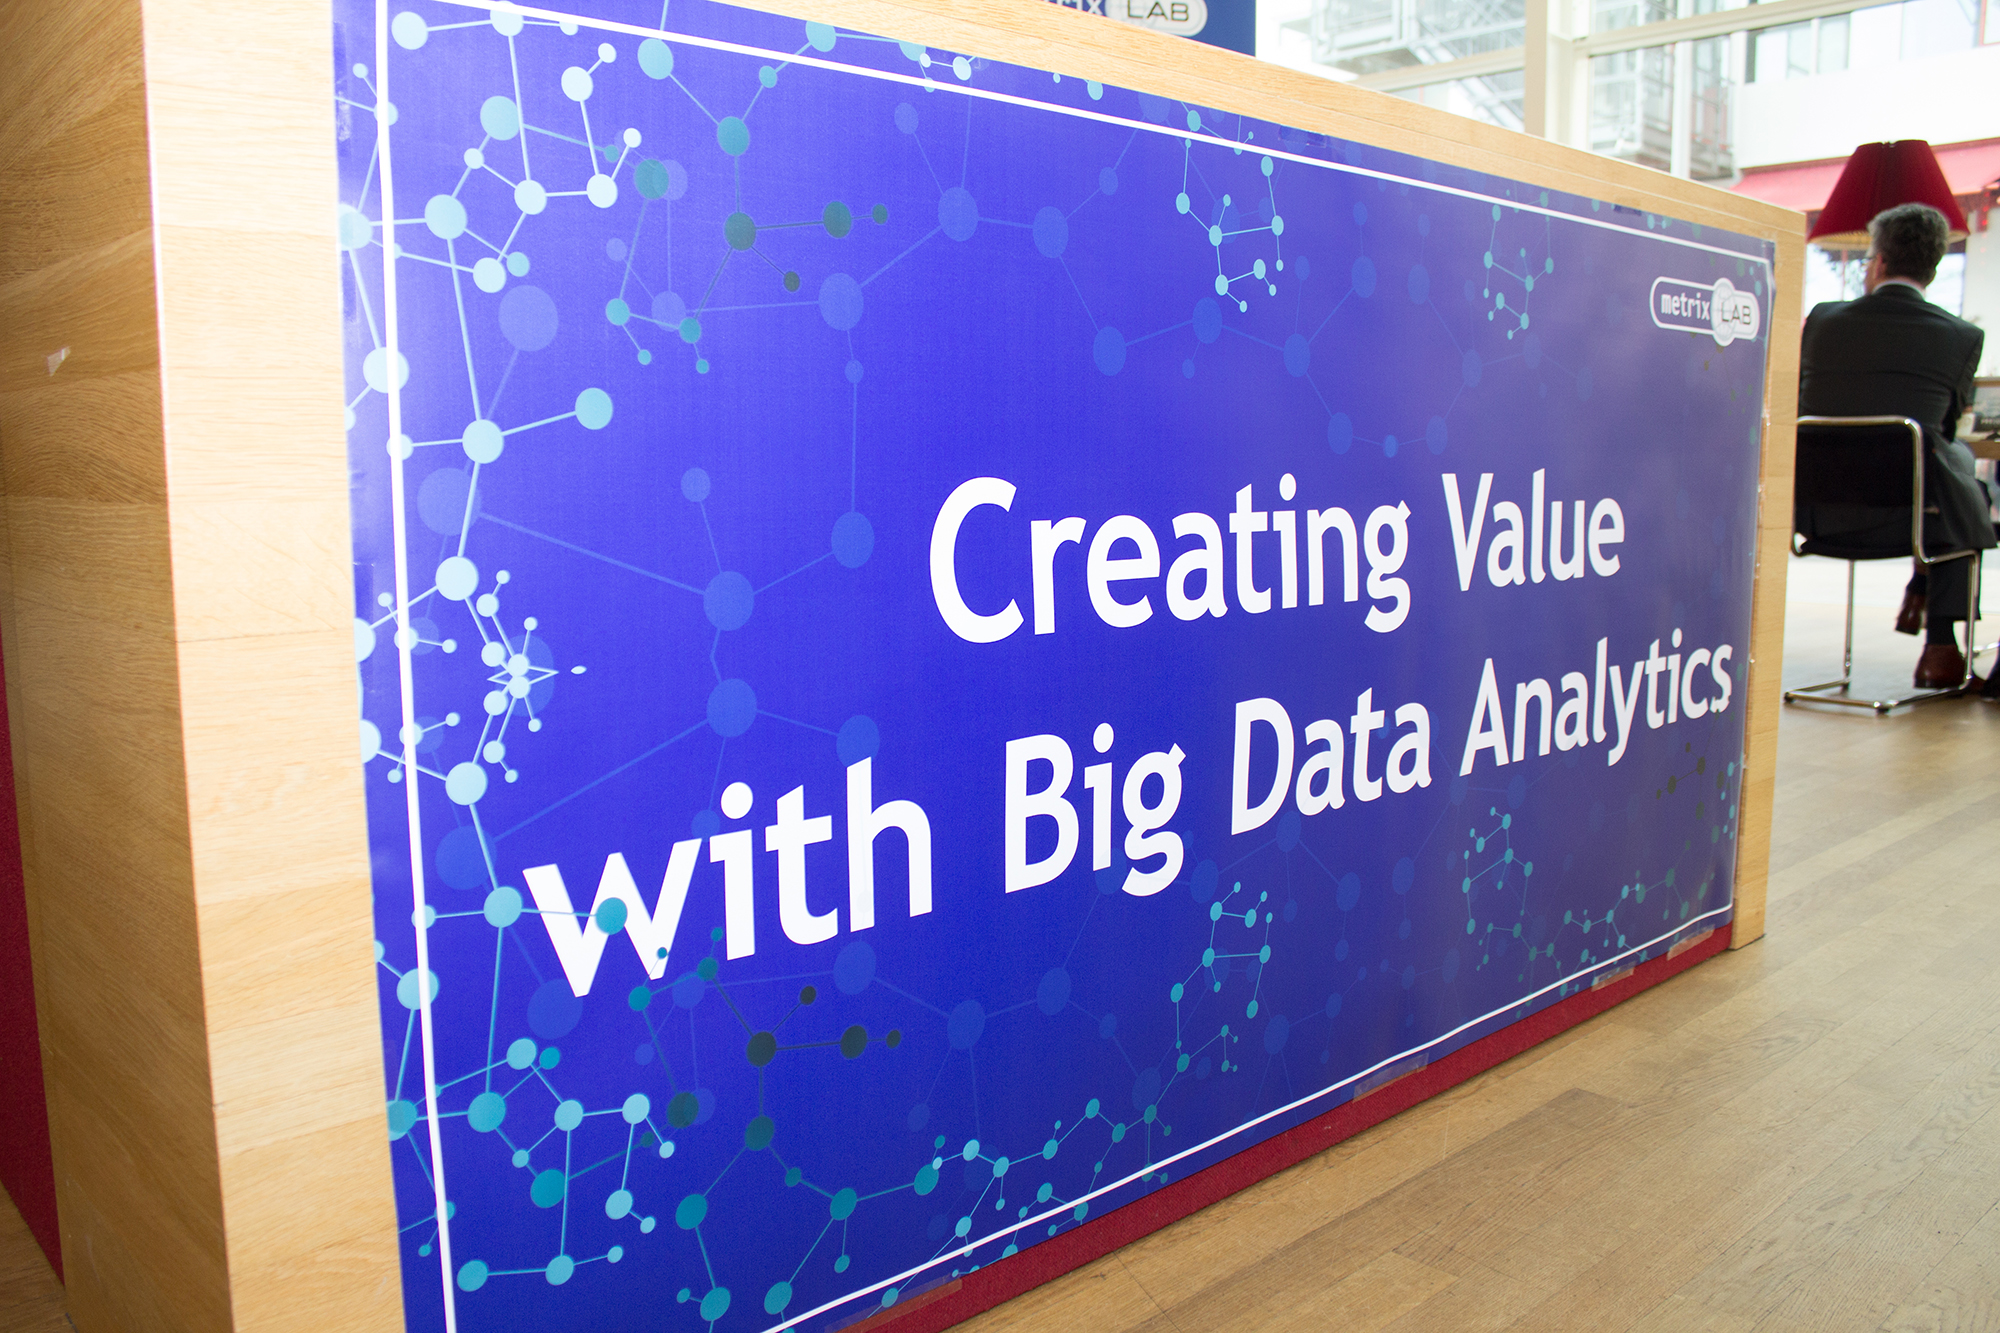 Creating Value with Big Data Analytics event